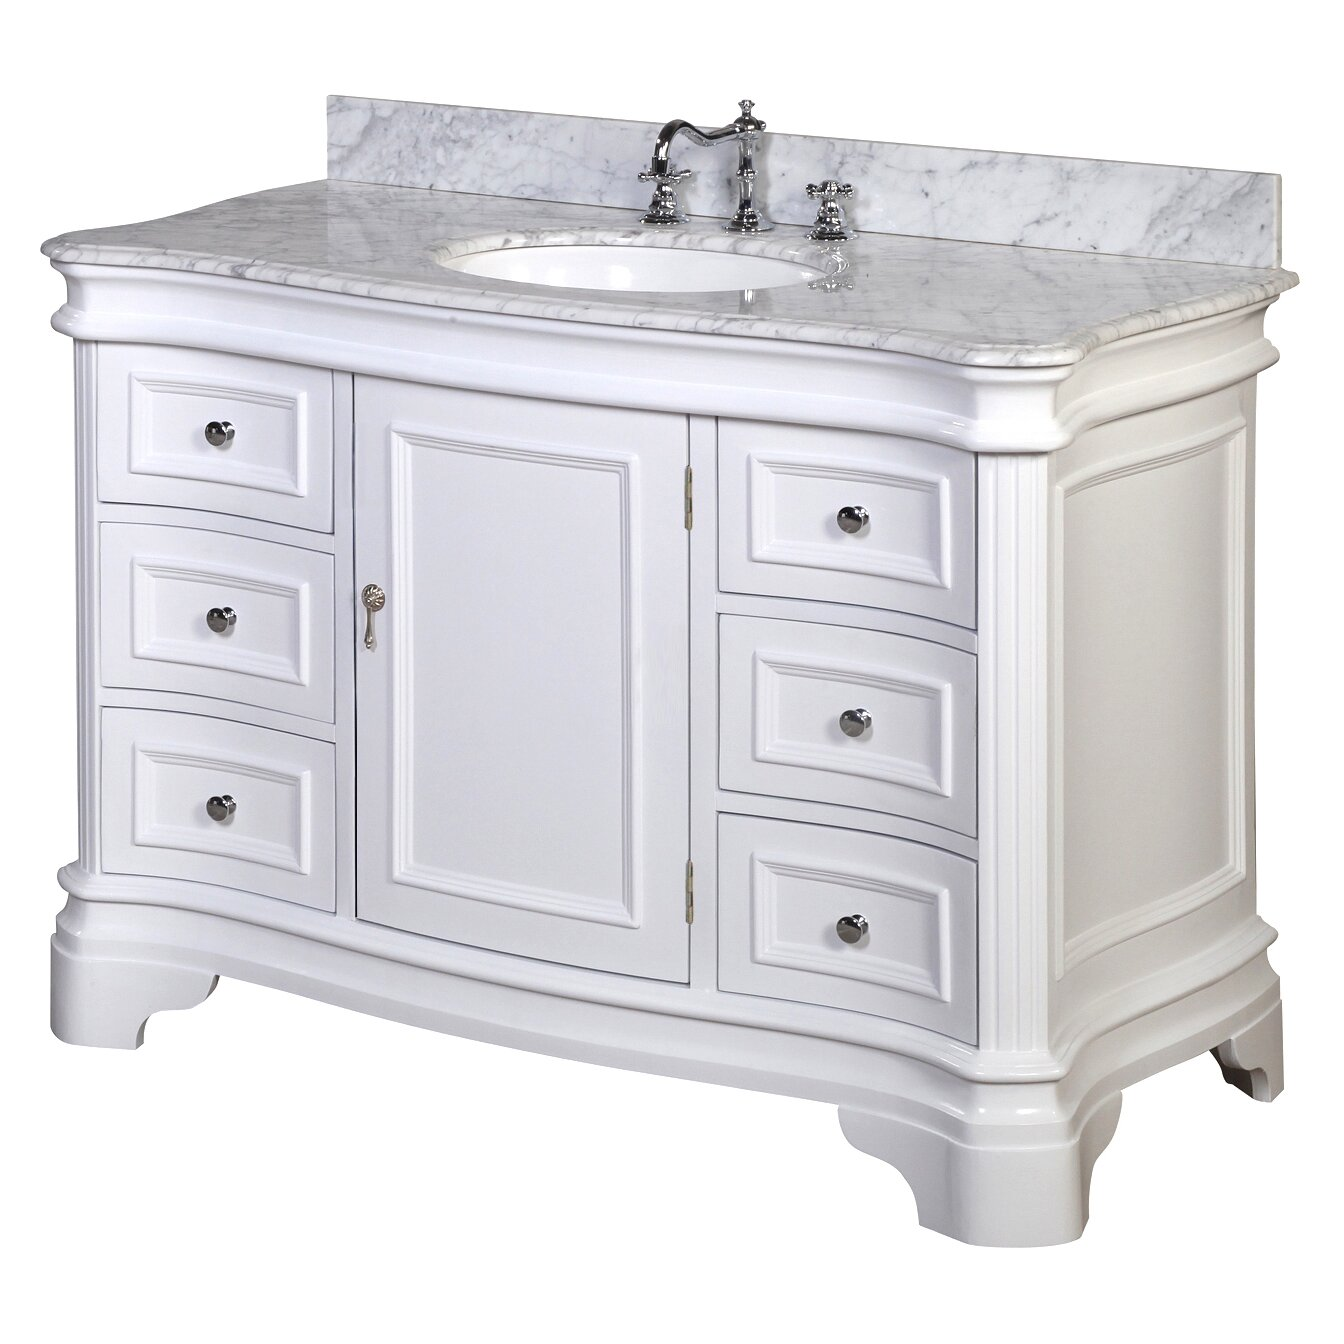 Kbc Katherine 48 Single Bathroom Vanity Set Reviews Wayfair